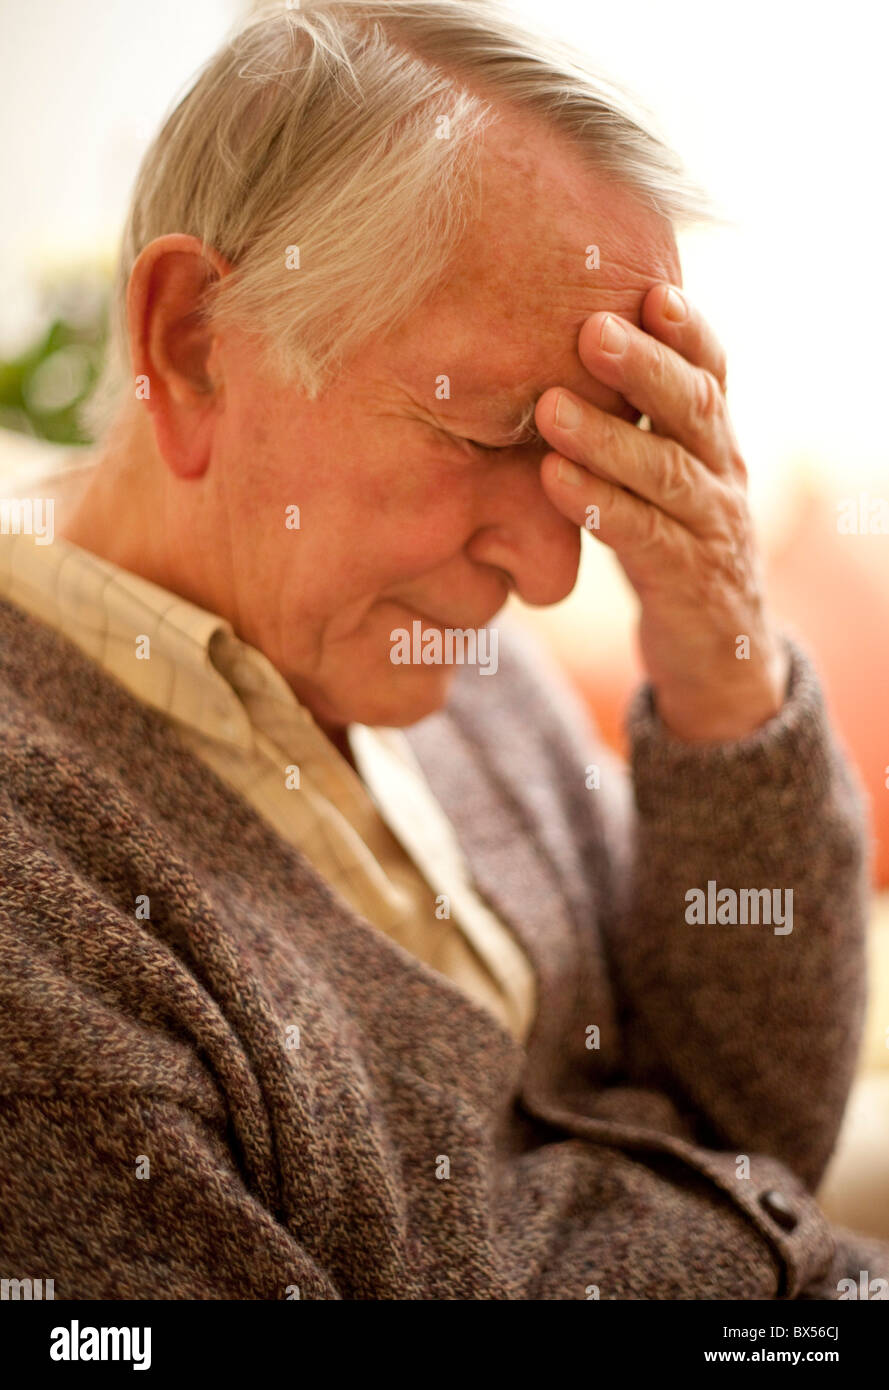 Depressed senior man - Stock Image